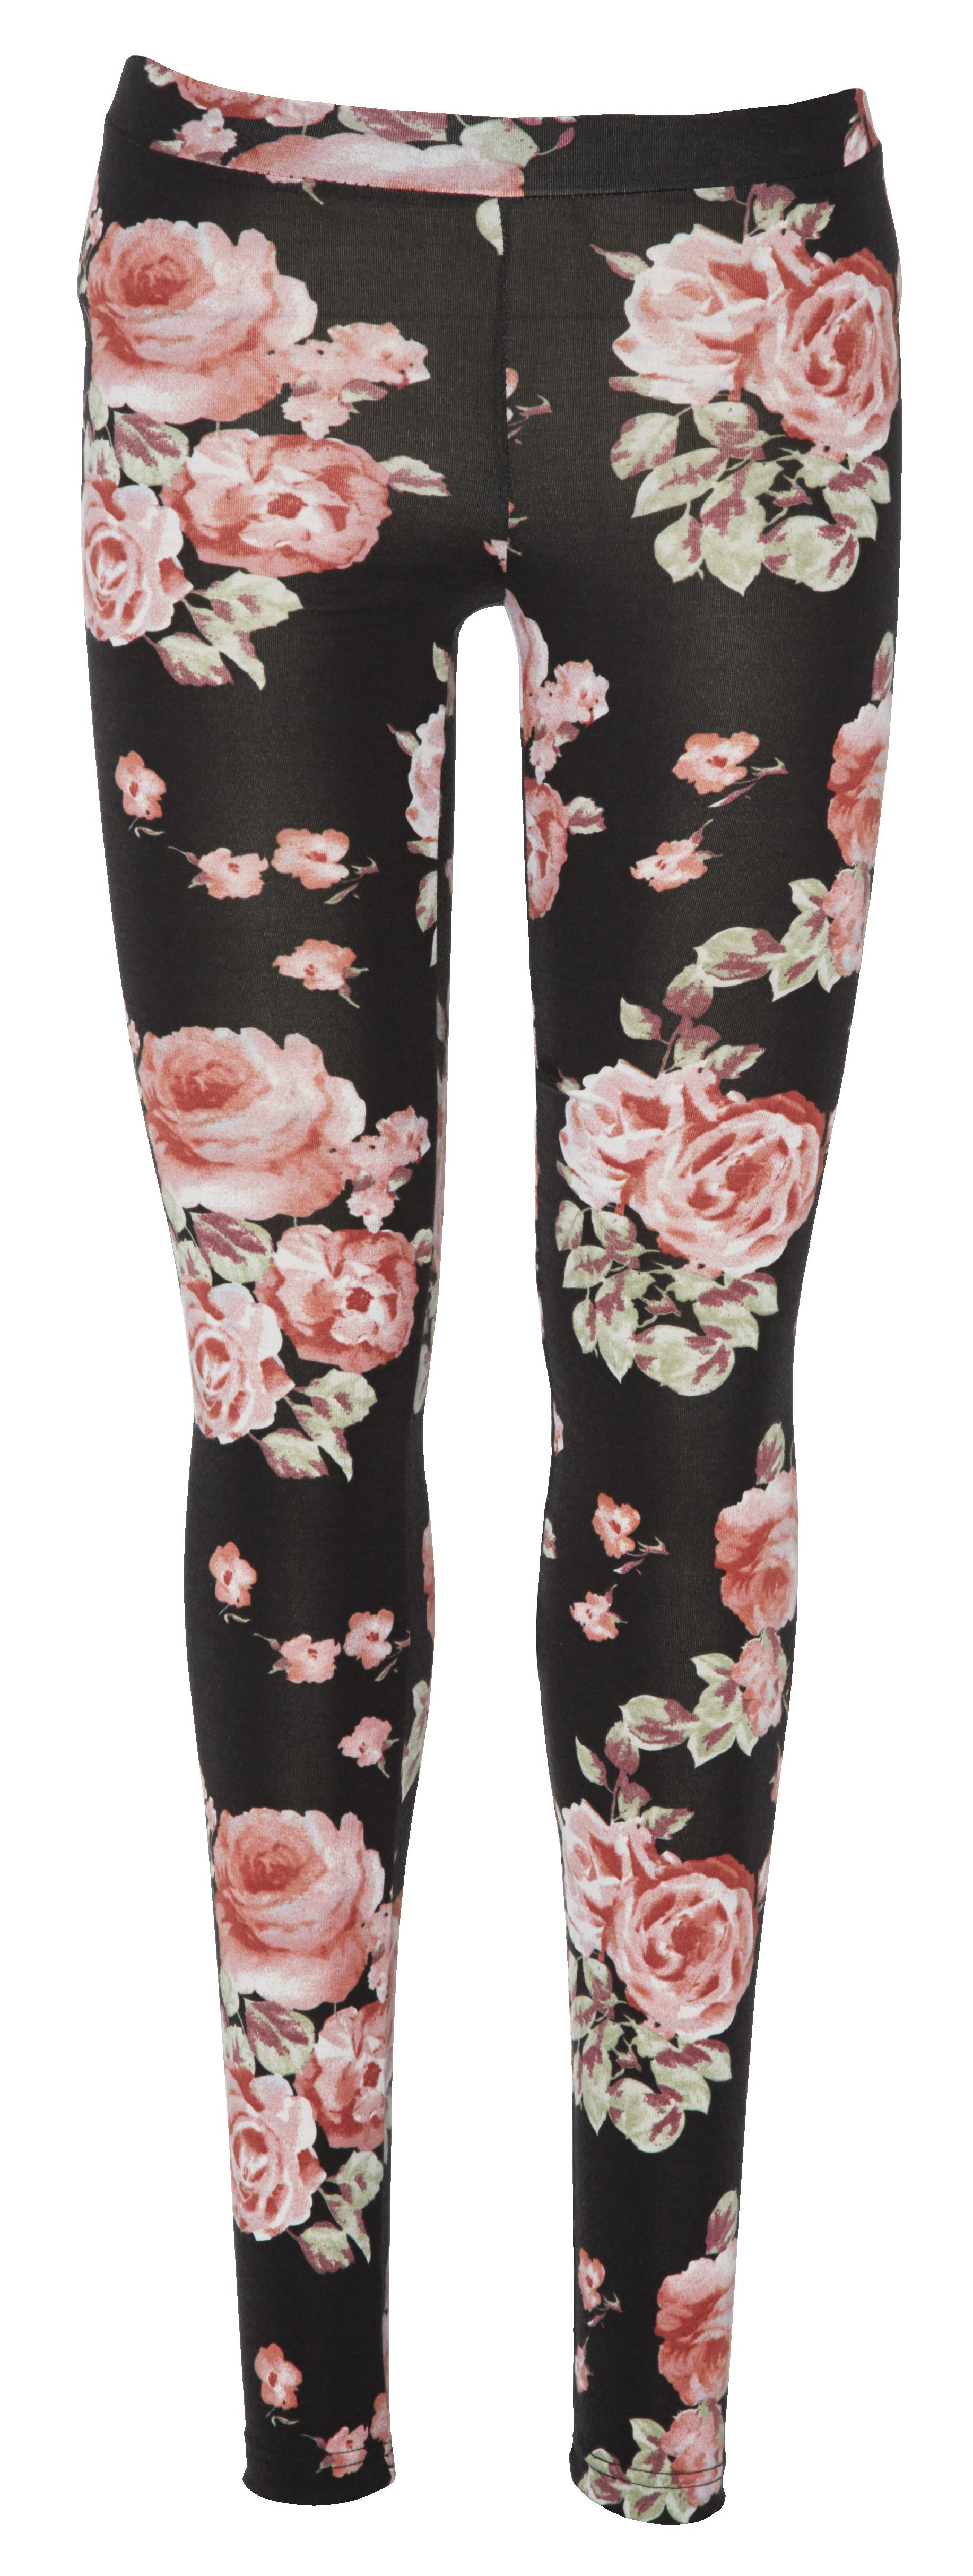 Leggings from Dotti #floralgrunge @Westfield New Zealand